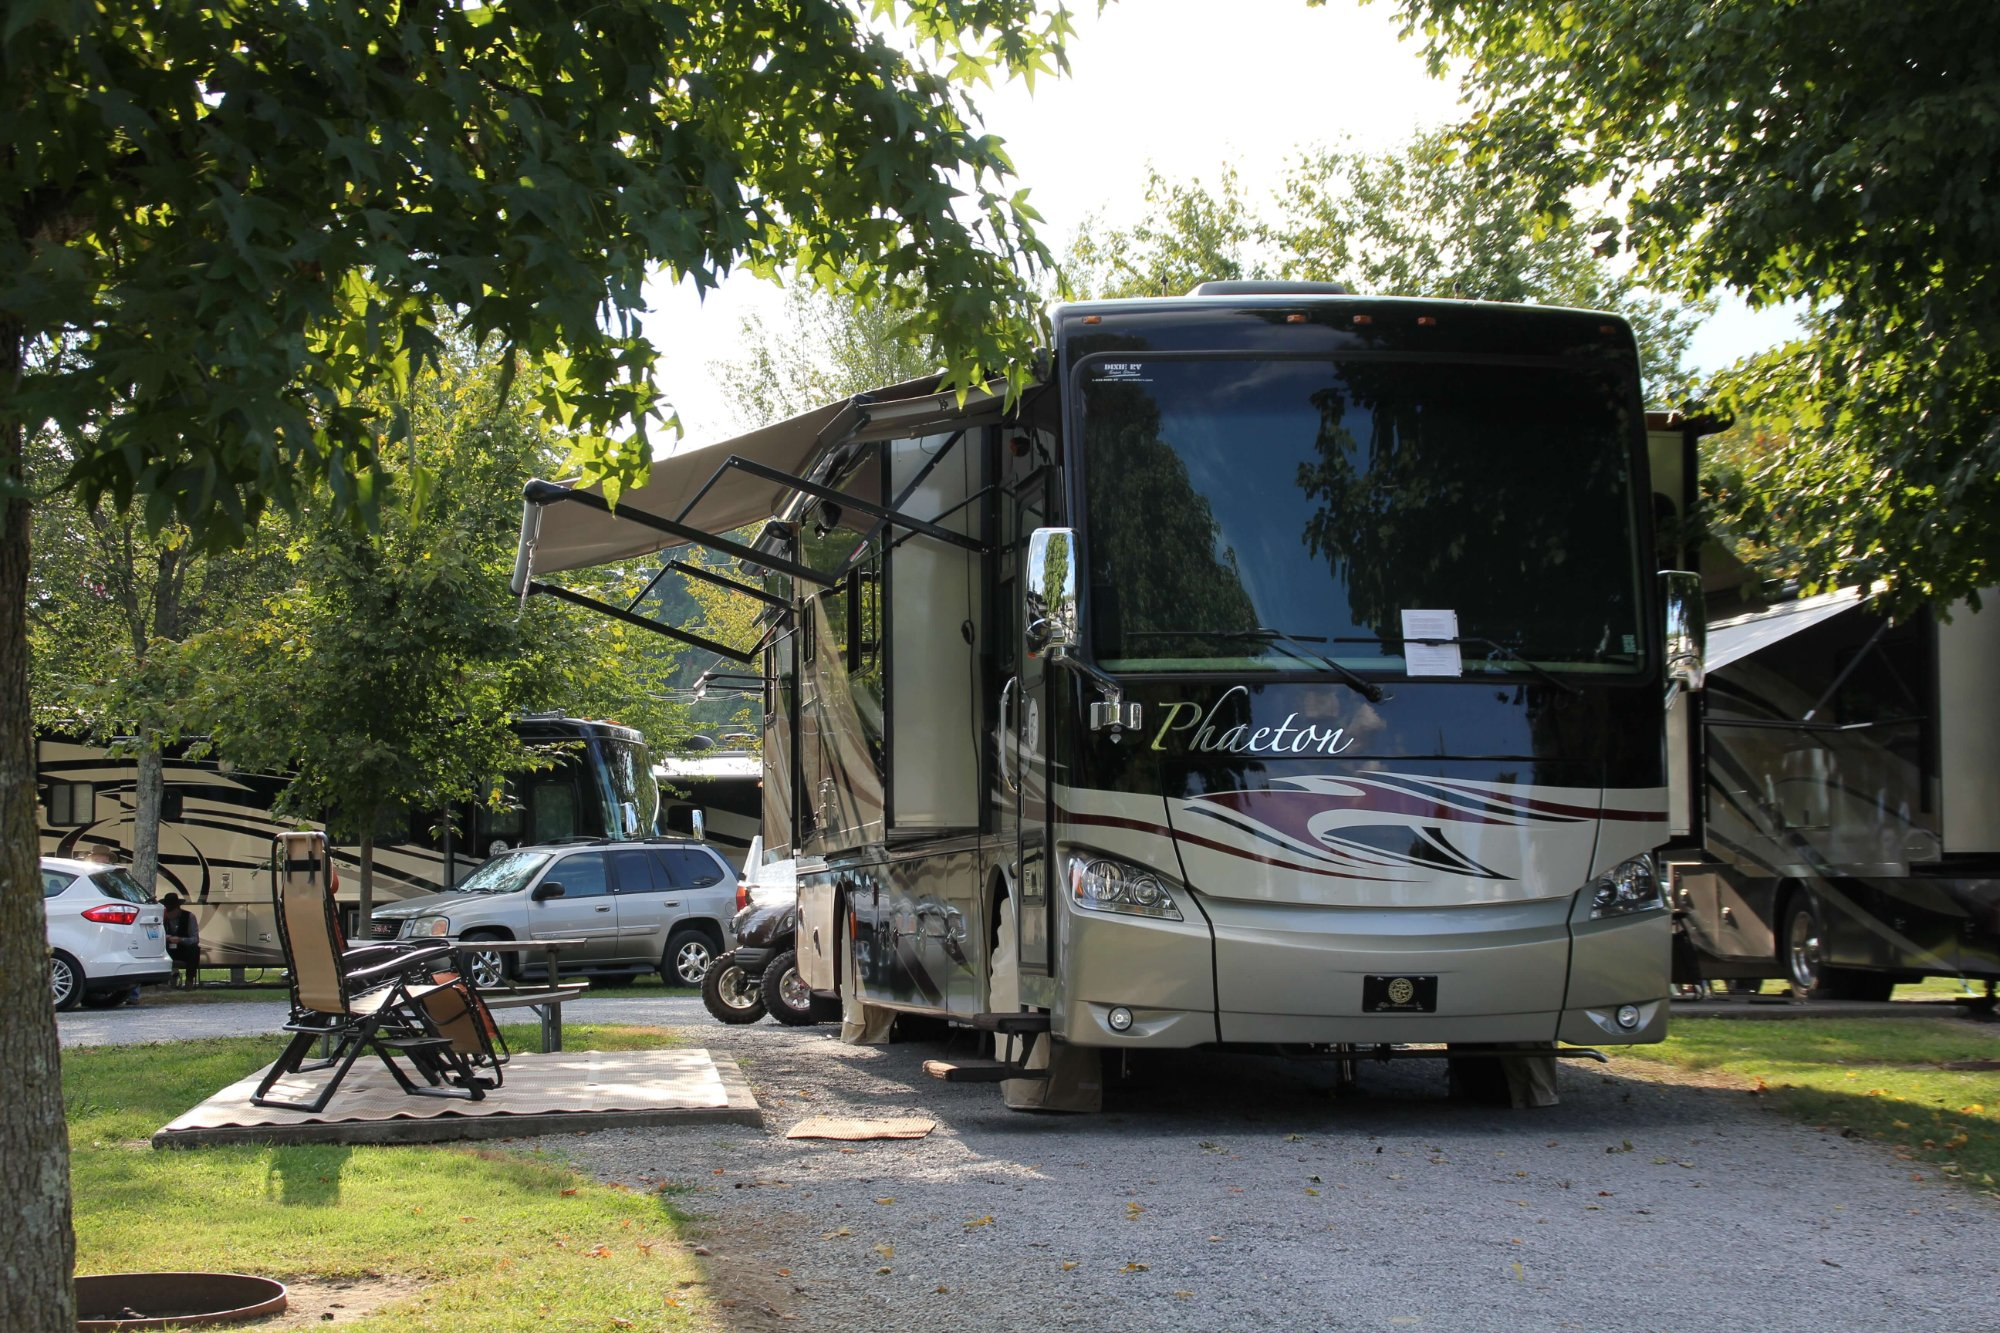 River Plantation RV Resort